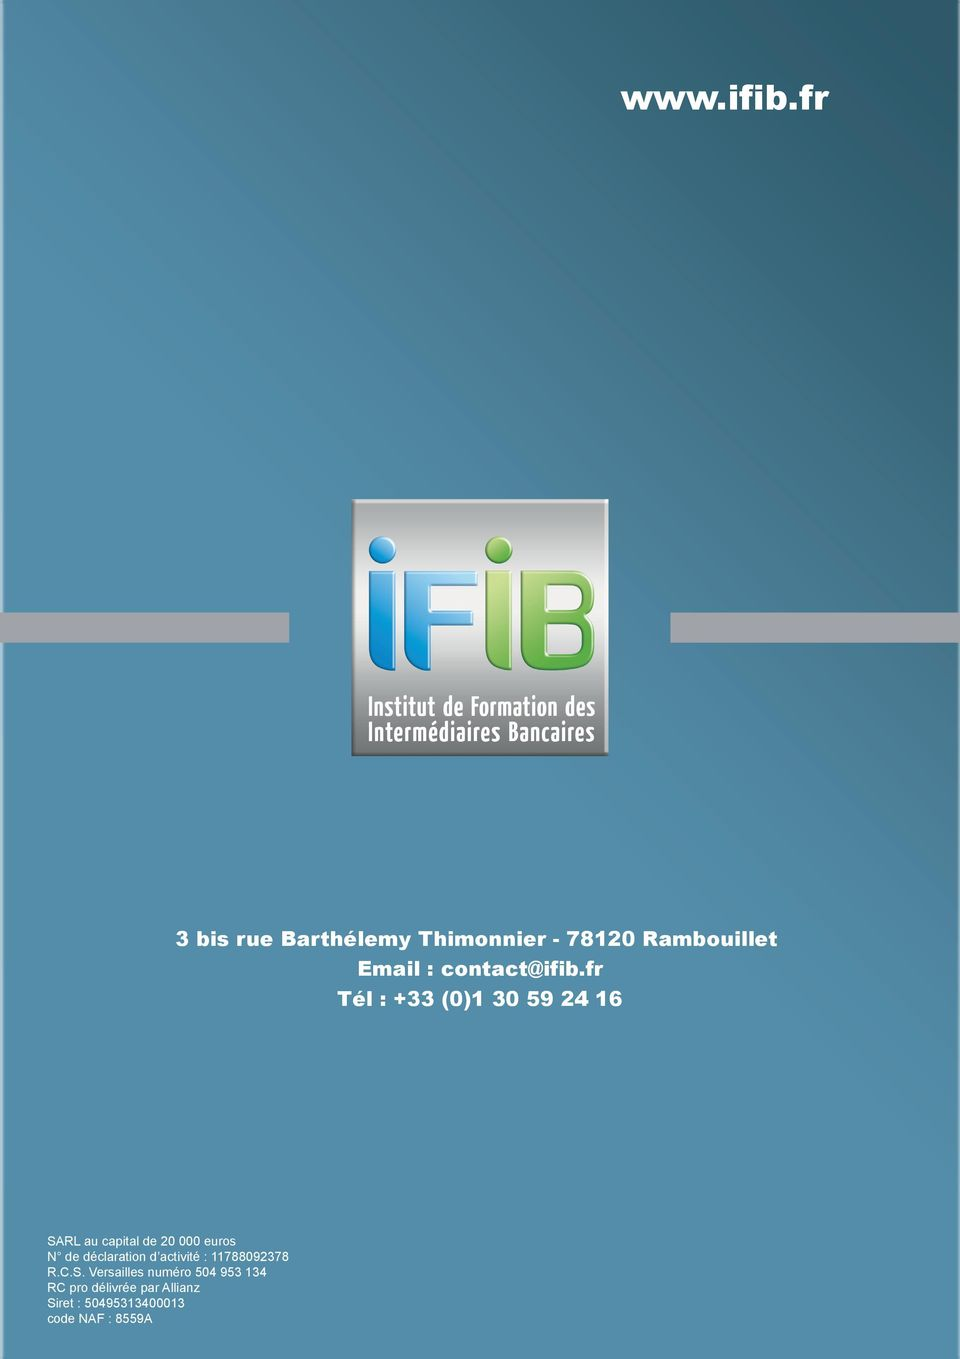 contact@ifib.